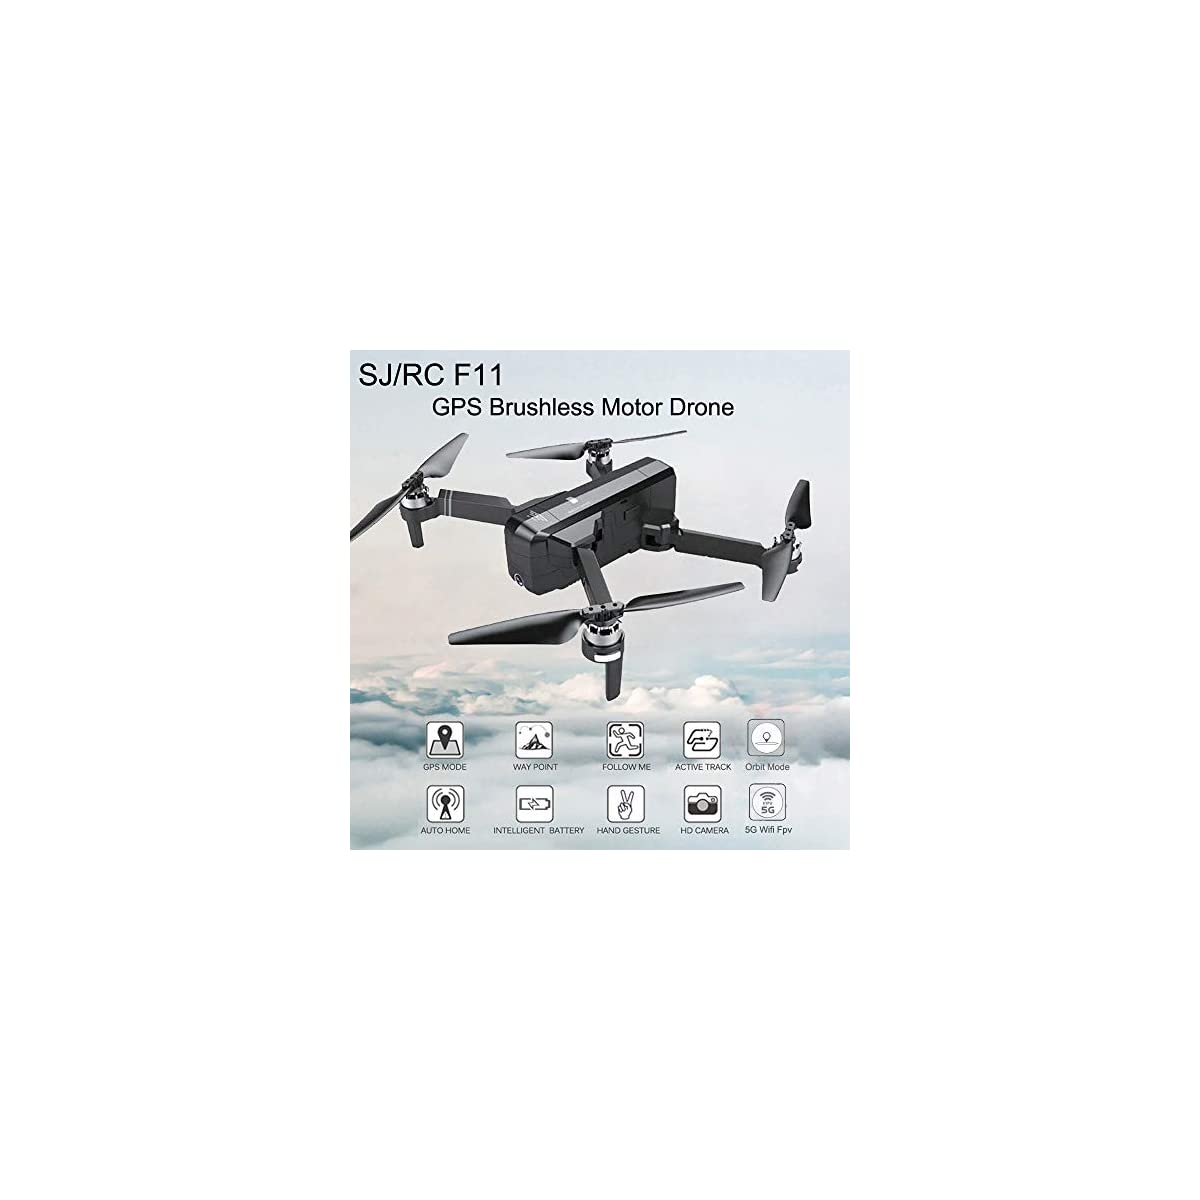 SaleProductsOffer - No.1 Best Online Store 51M8acs0VYL Aimik RC Quadcopter Selfie Drone SJRC F11, WiFi 1080P HD Camera Foldable Quadcopter Good Choice for Drone Training Beginners & Kids (Black)